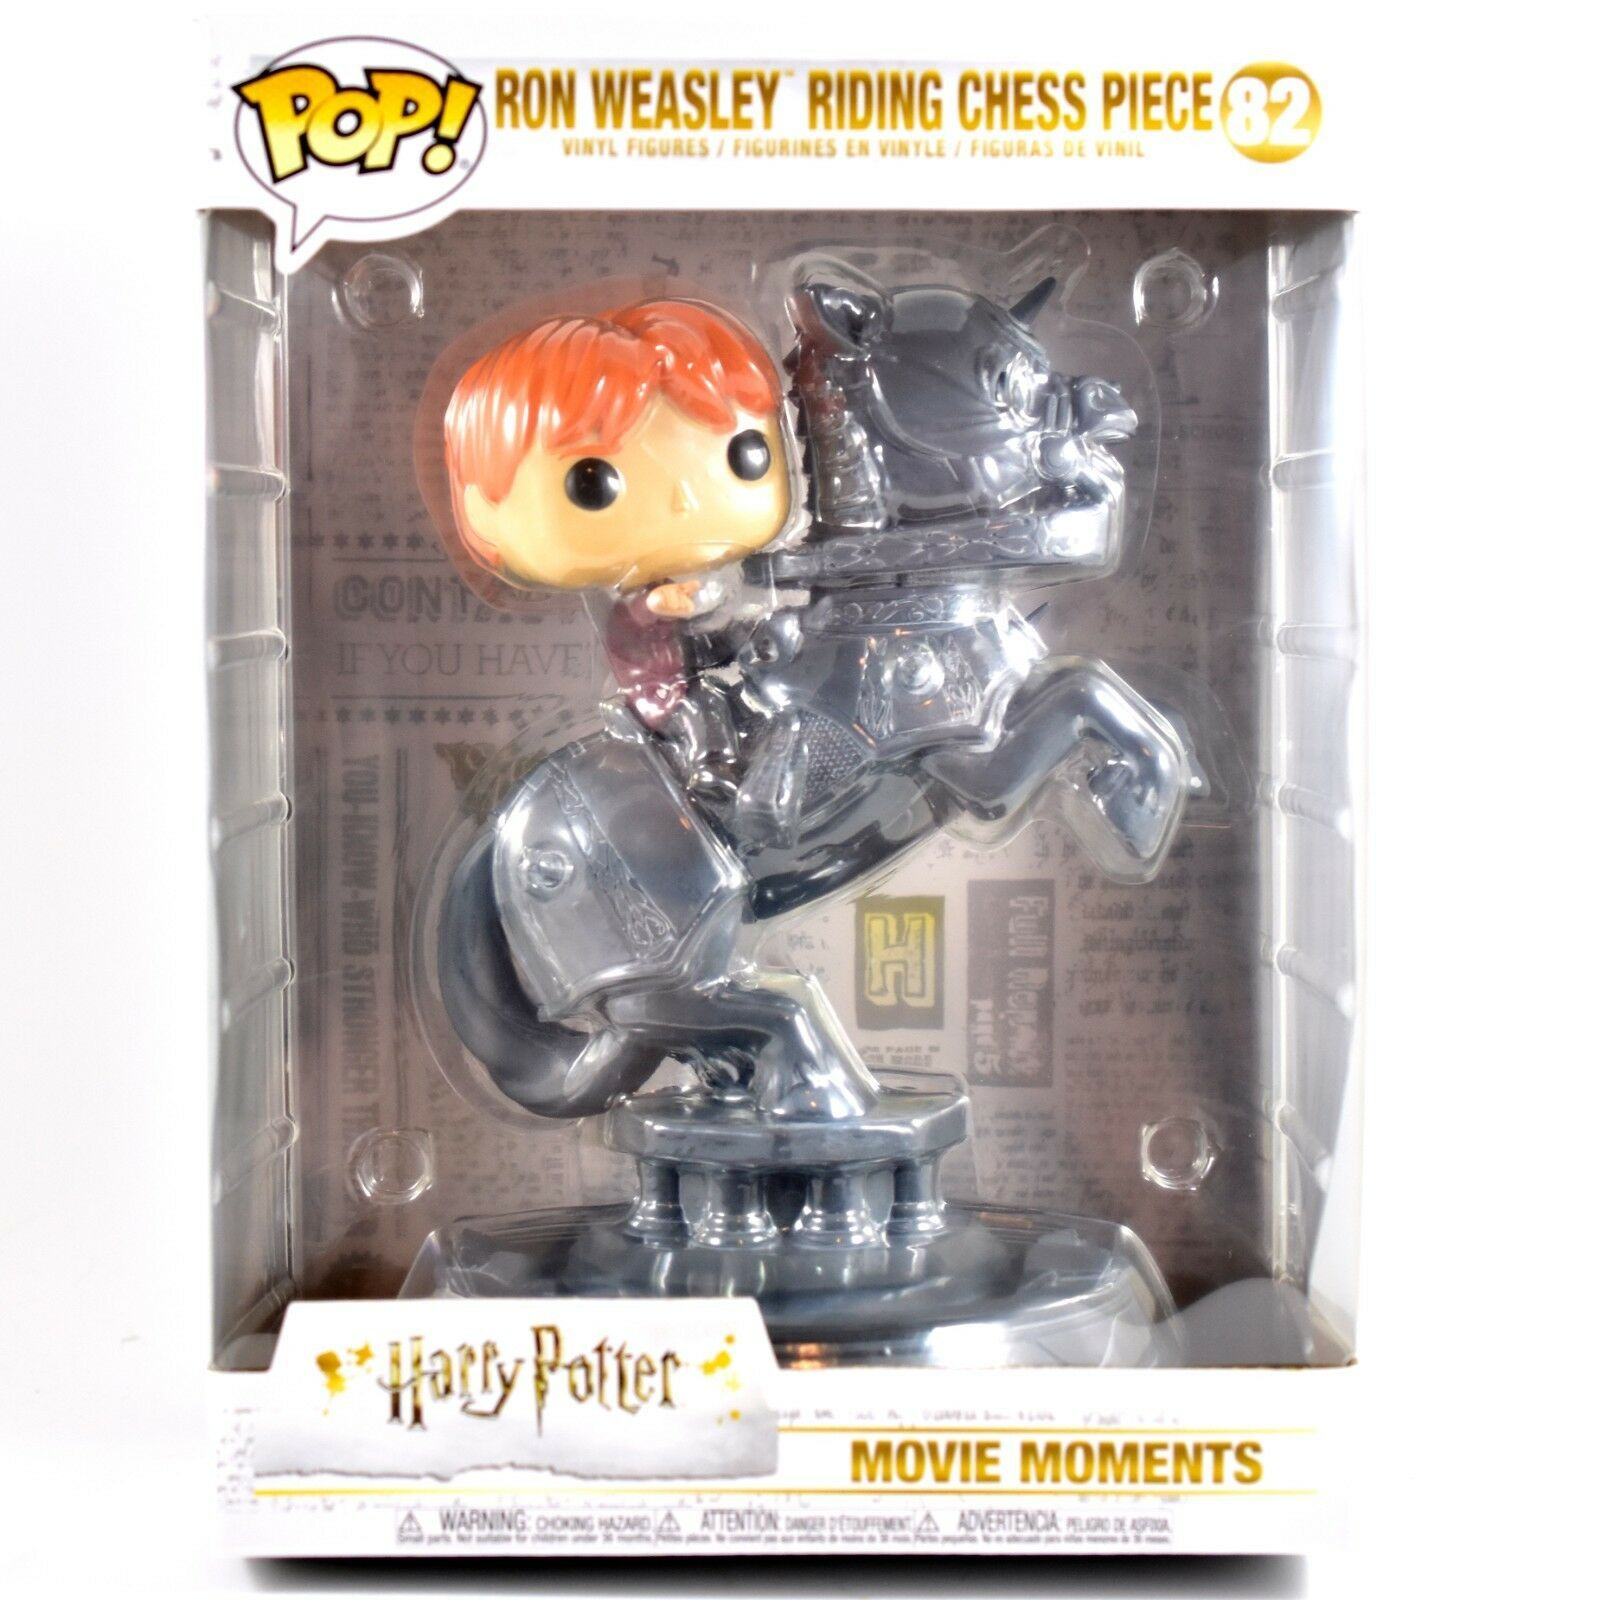 Funko Pop! Movie Moments Harry Potter Ron Weasley Riding Chess Piece #82